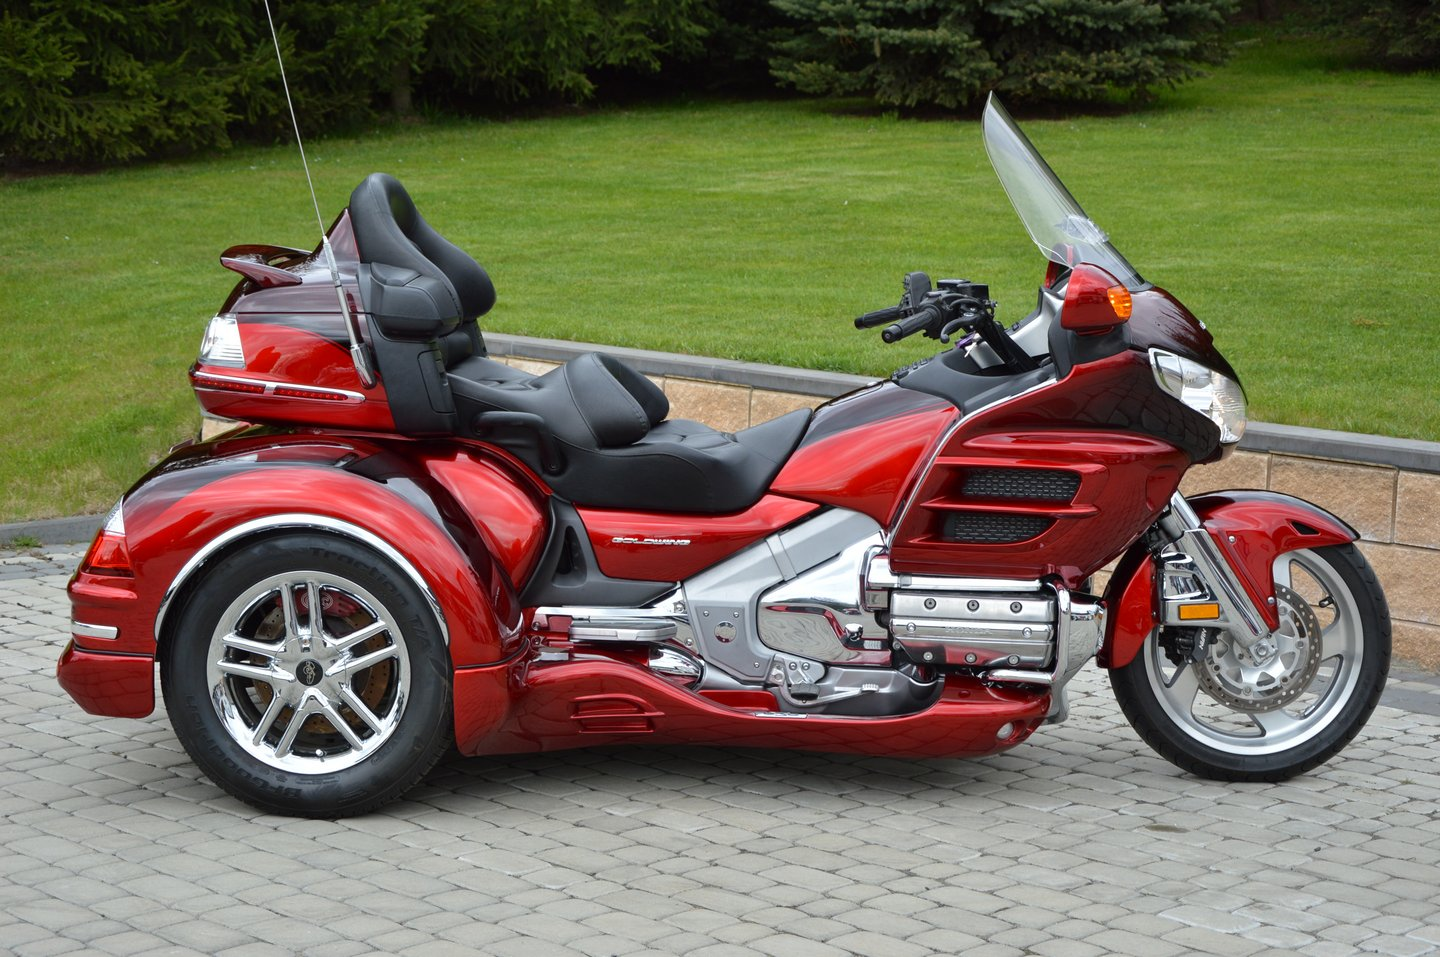 2006 Goldwing Trikes For Sale | Autos Post